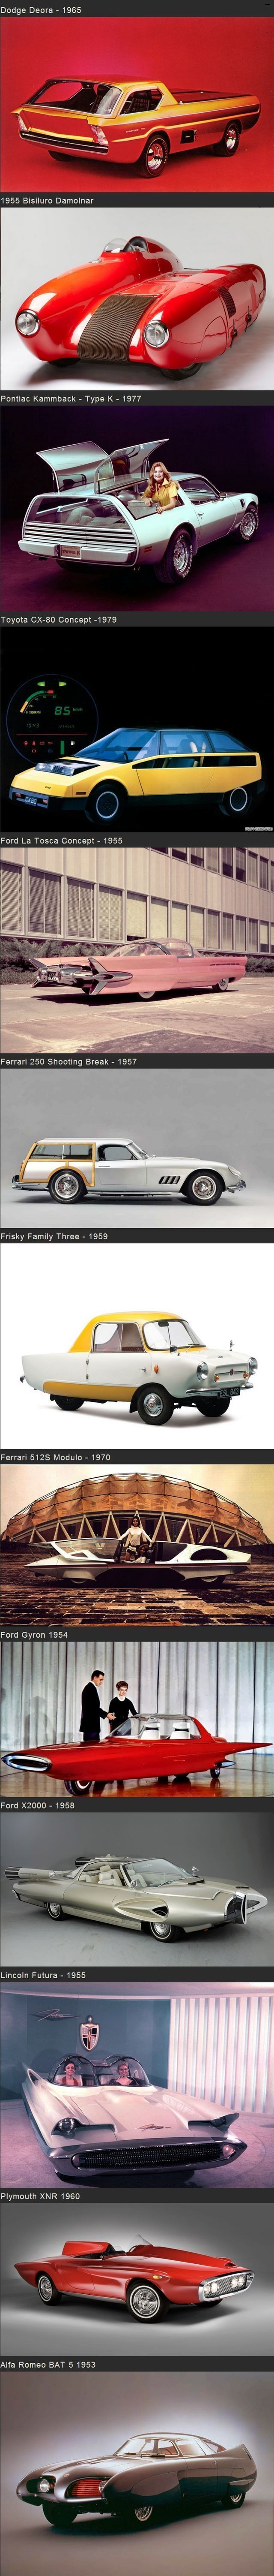 Strange concept car prototypes from the